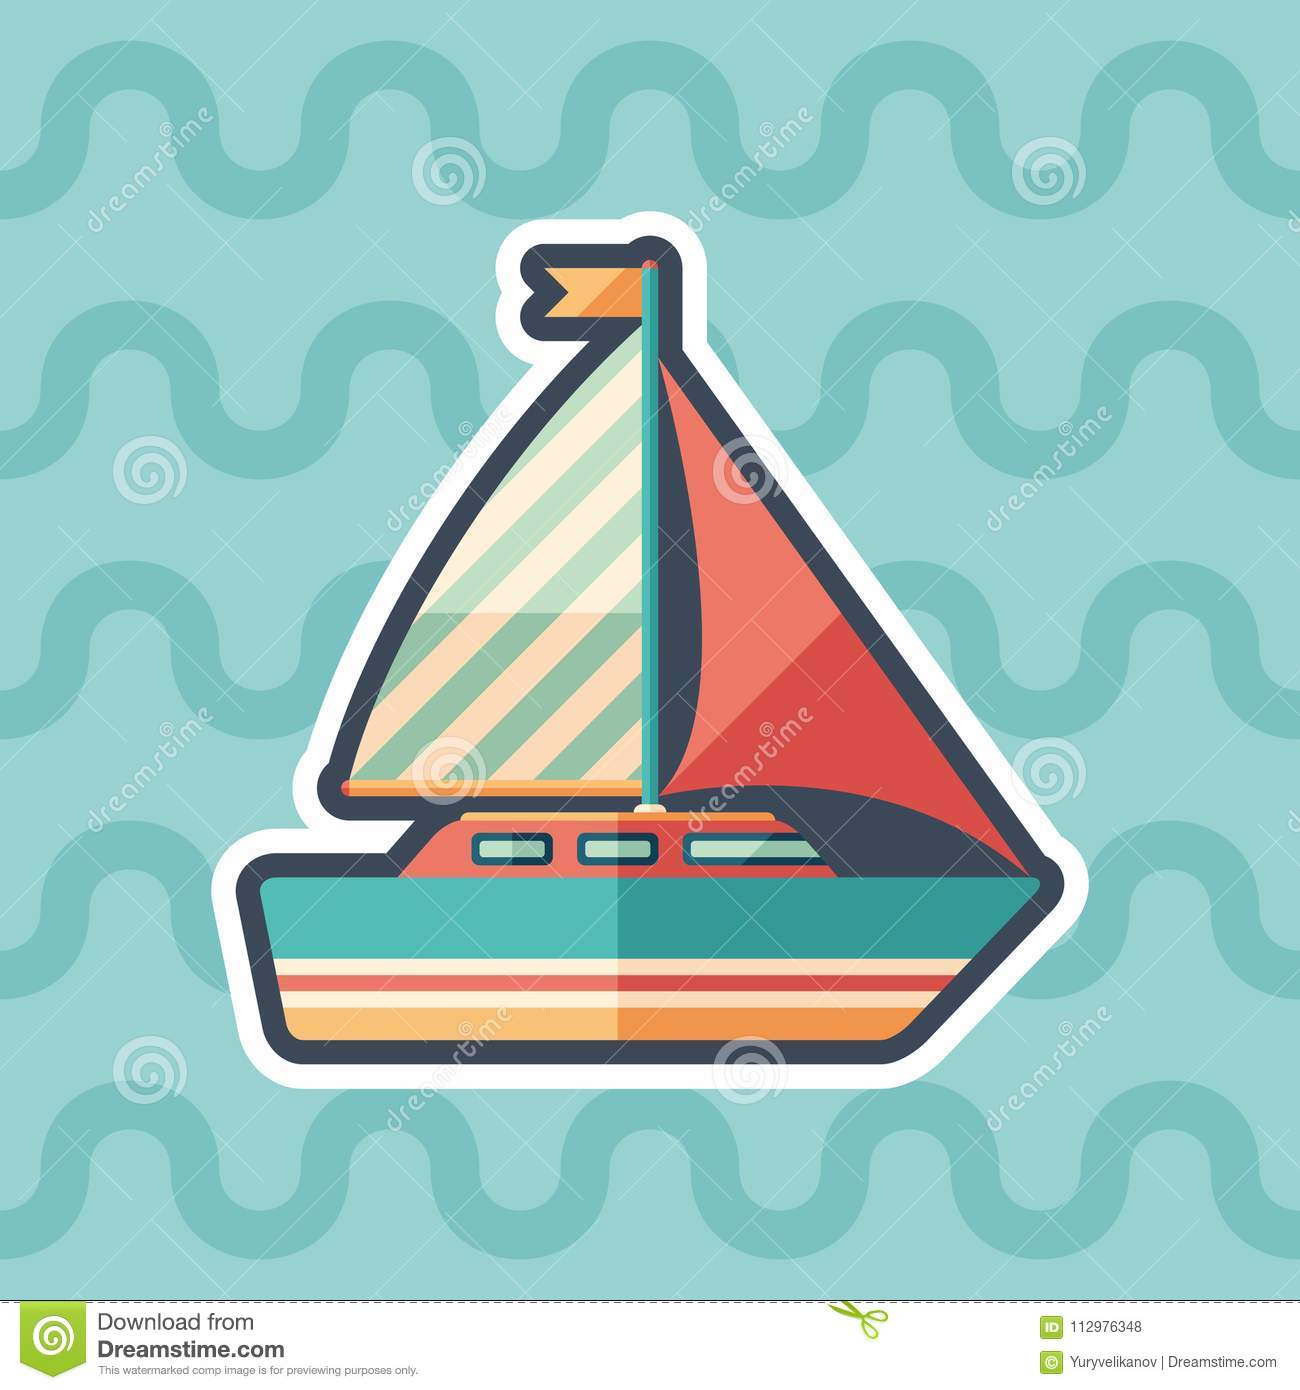 Sailing yacht sticker flat icon with color background.